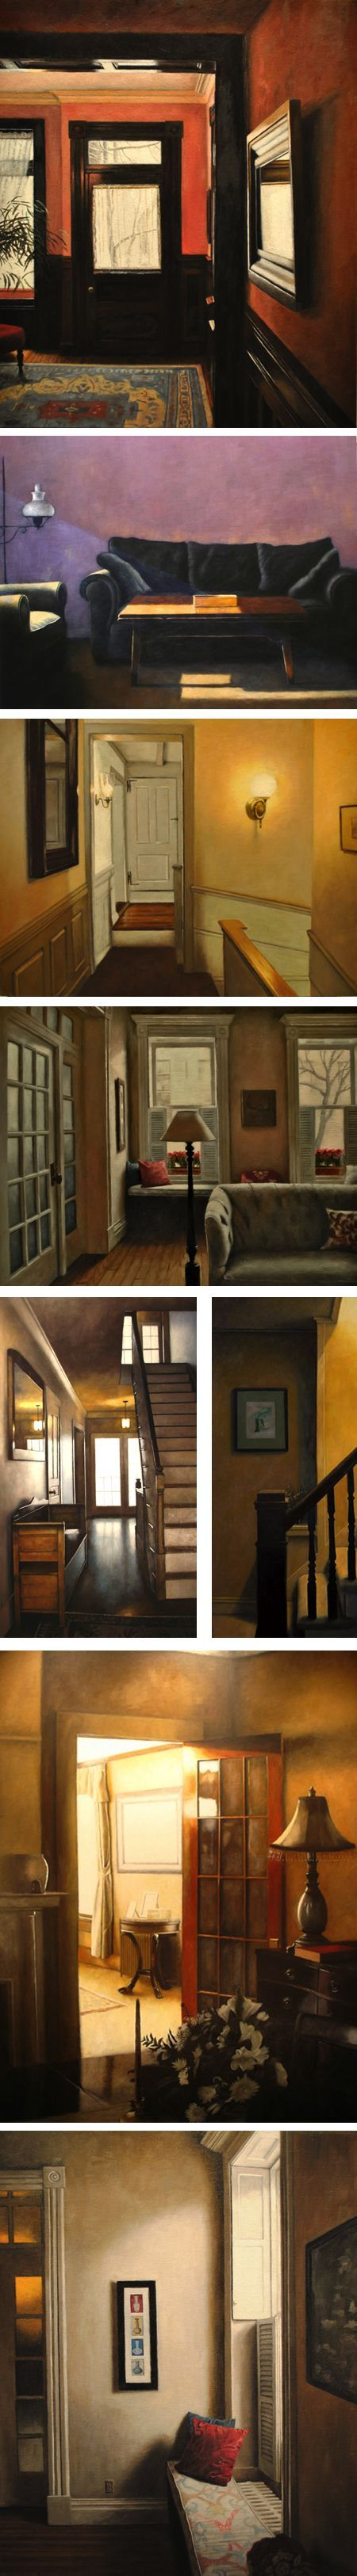 Nick Patten - notice how Edward Hopper managed to instil life in his lonley rooms, I don't think Patten does despite lovely artwork